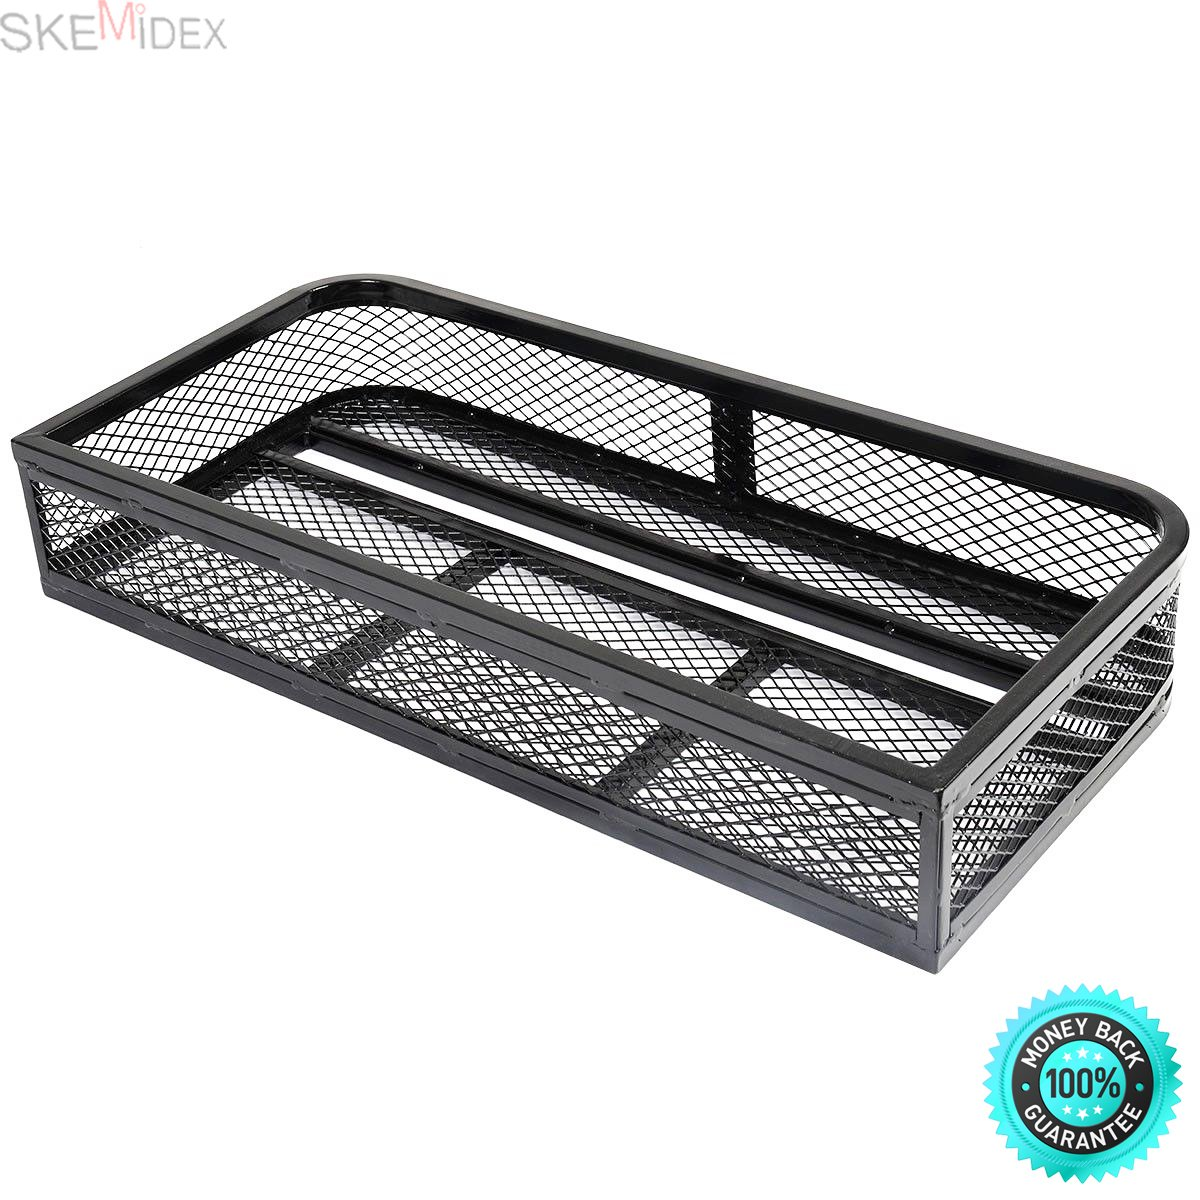 SKEMIDEX---Universal Front Atv Hd Steel Cargo Basket Rack Luggage Carrier Durable powder coated finish to withstand most demanding rides Lightweight design wont tax your ATV's power